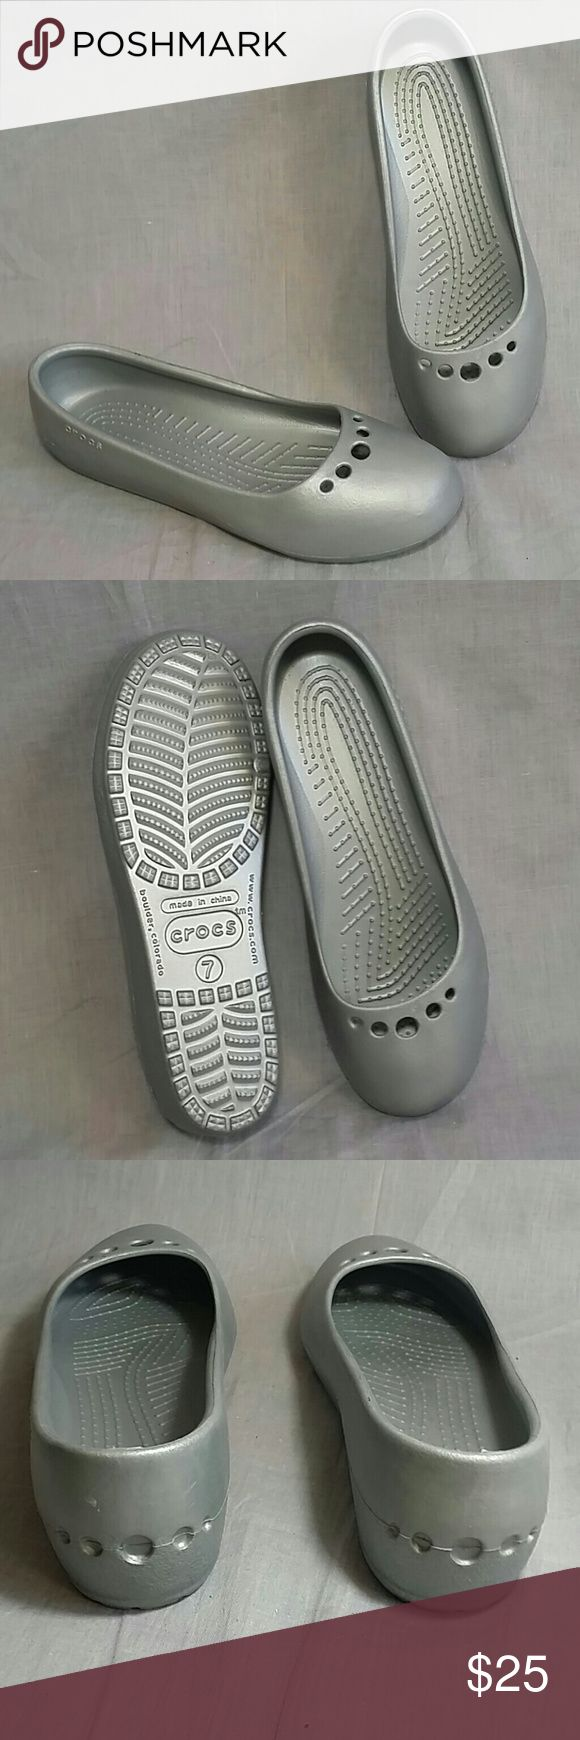 Crocs Shoes Gray Size 7 M Slip-on Rubber NEW Flat Women's Crocs Shoes item is NEW never been used. Crocs  Shoes Flats & Loafers